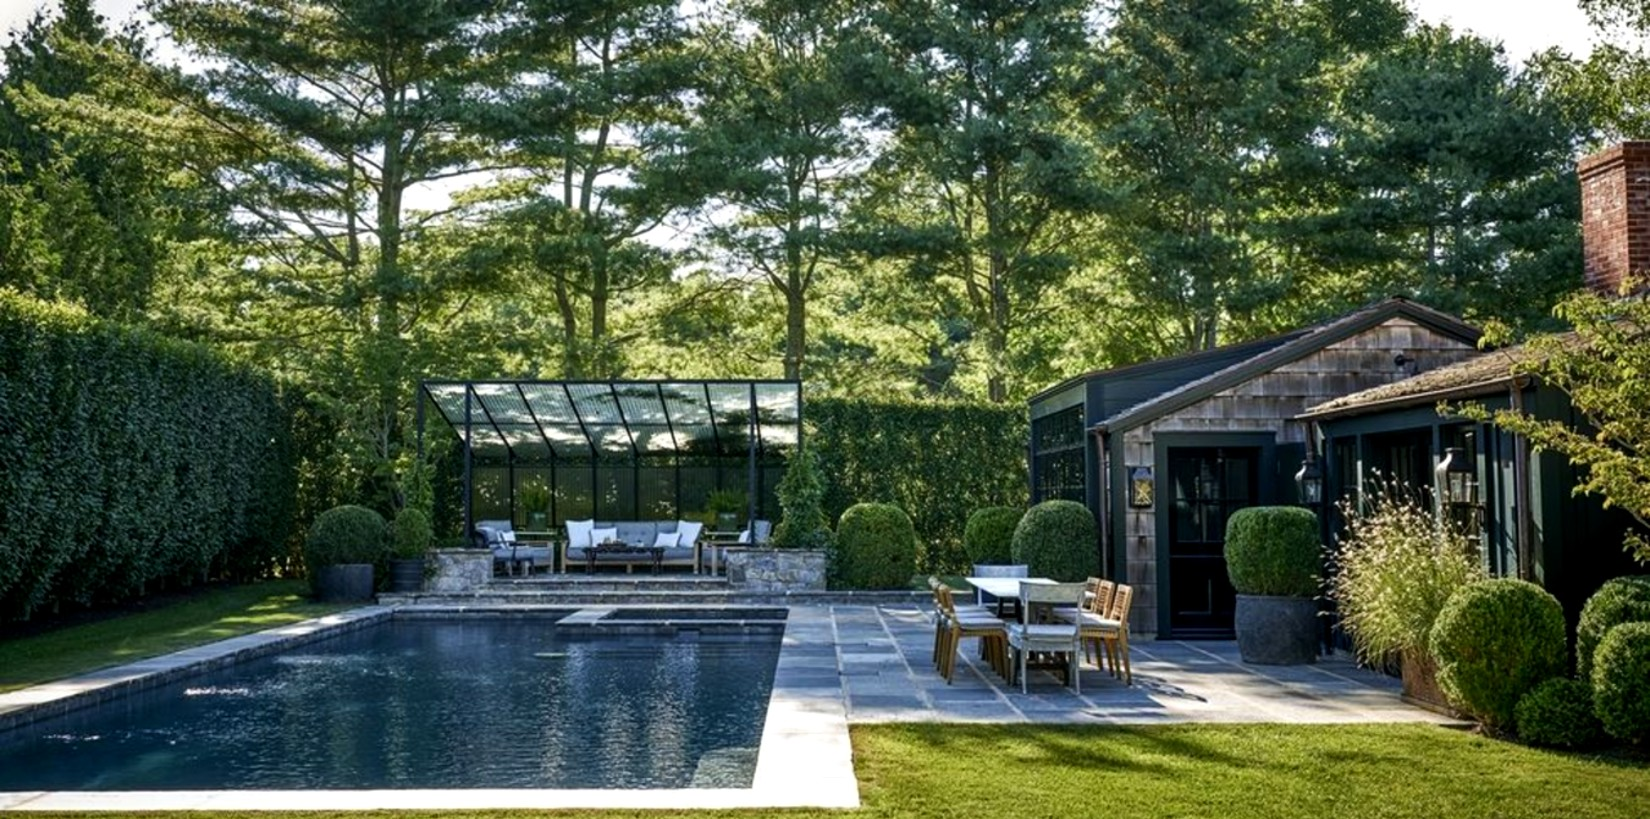 7 Patio Design Ideas To Create A Timeless Outdoor Paradise For The Summer Inspirations Essential Home